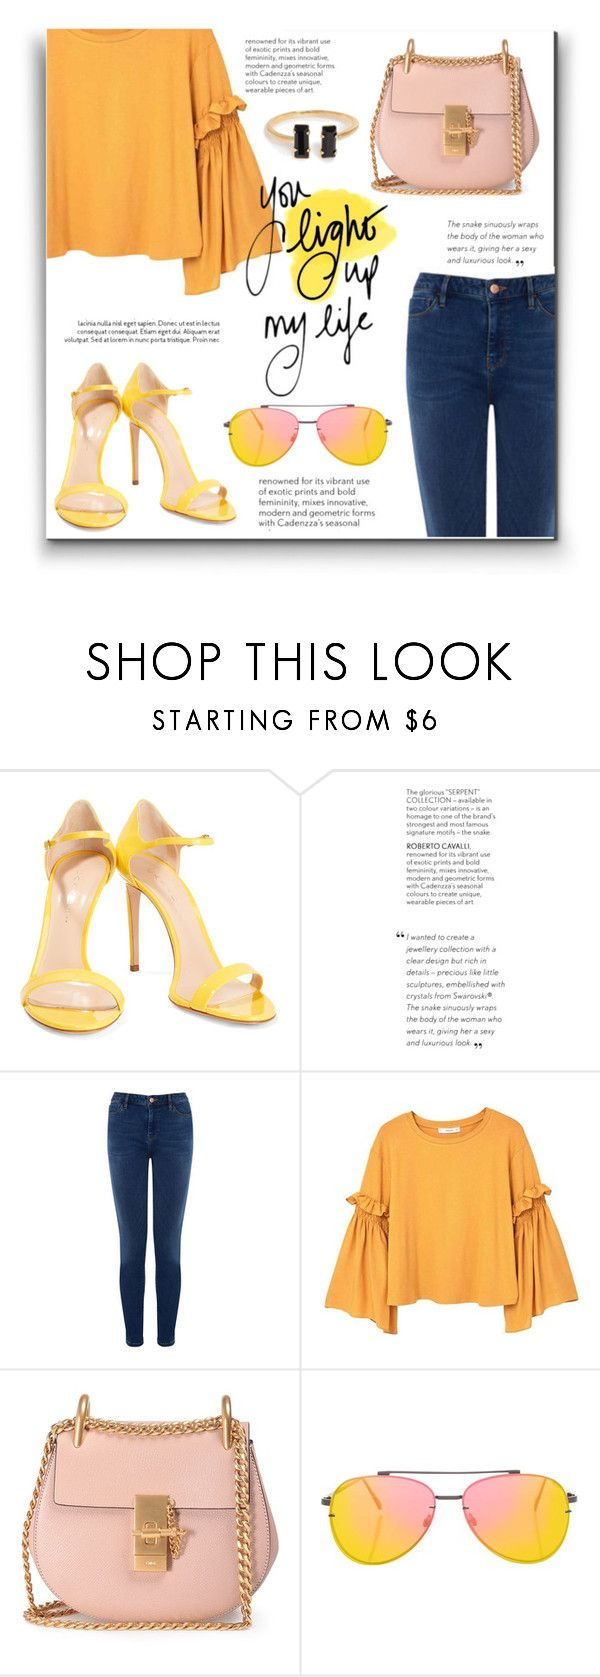 """Patent Leather"" by achernar ❤ liked on Polyvore featuring Casadei, Warehouse, MANGO, Chloé and Topshop"